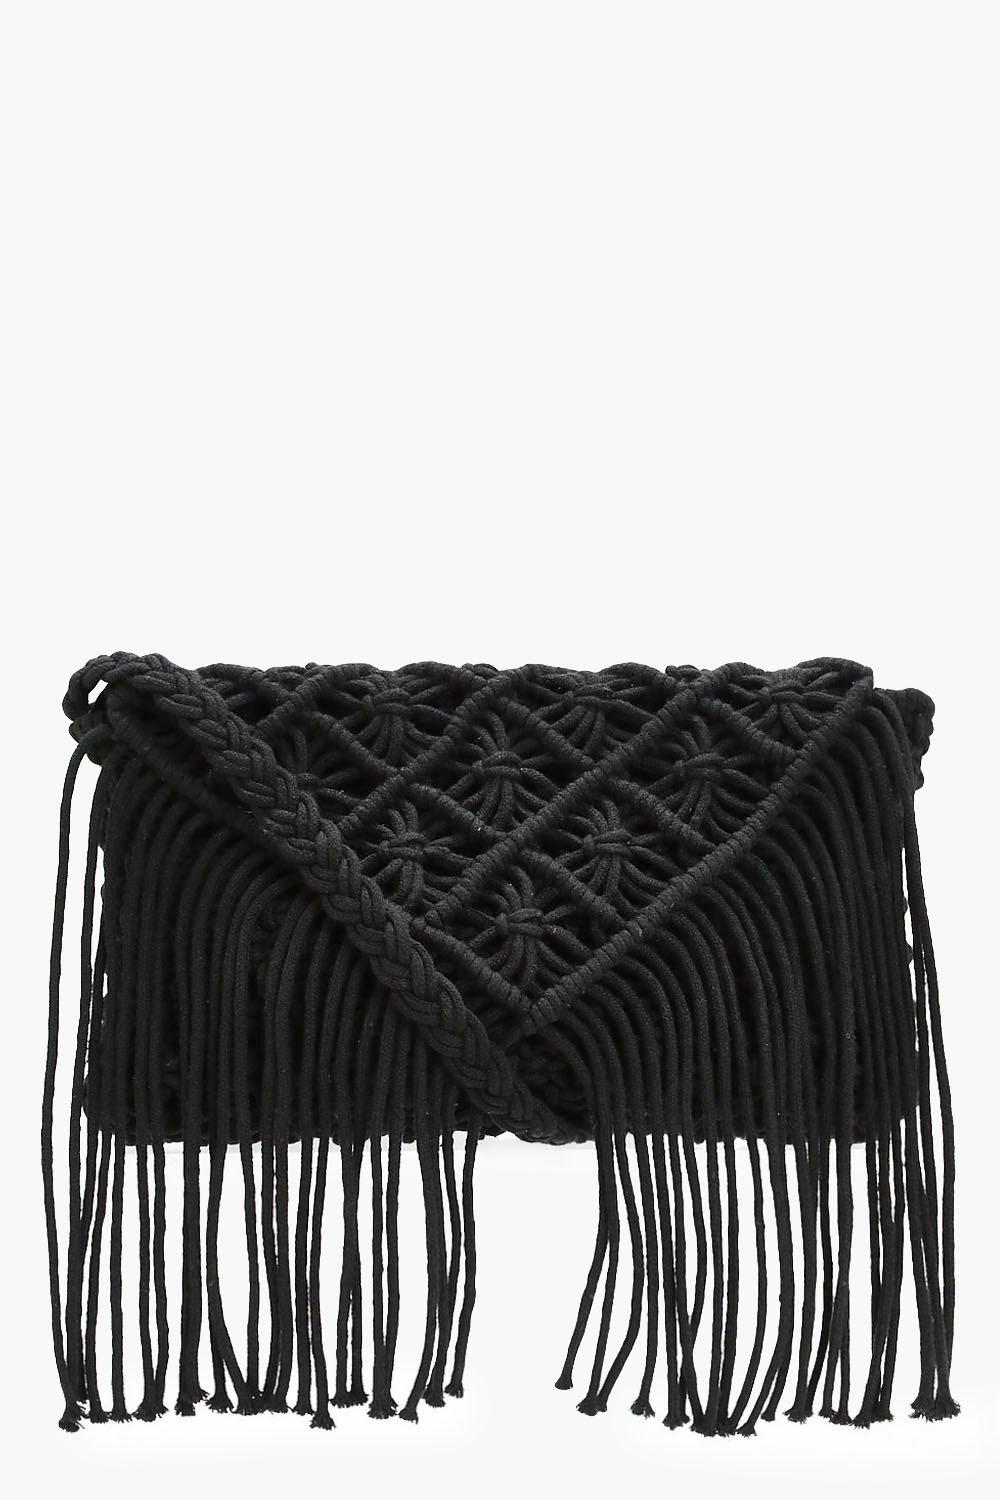 Crochet Tassel Cross Body Bag - black - Alex Croch